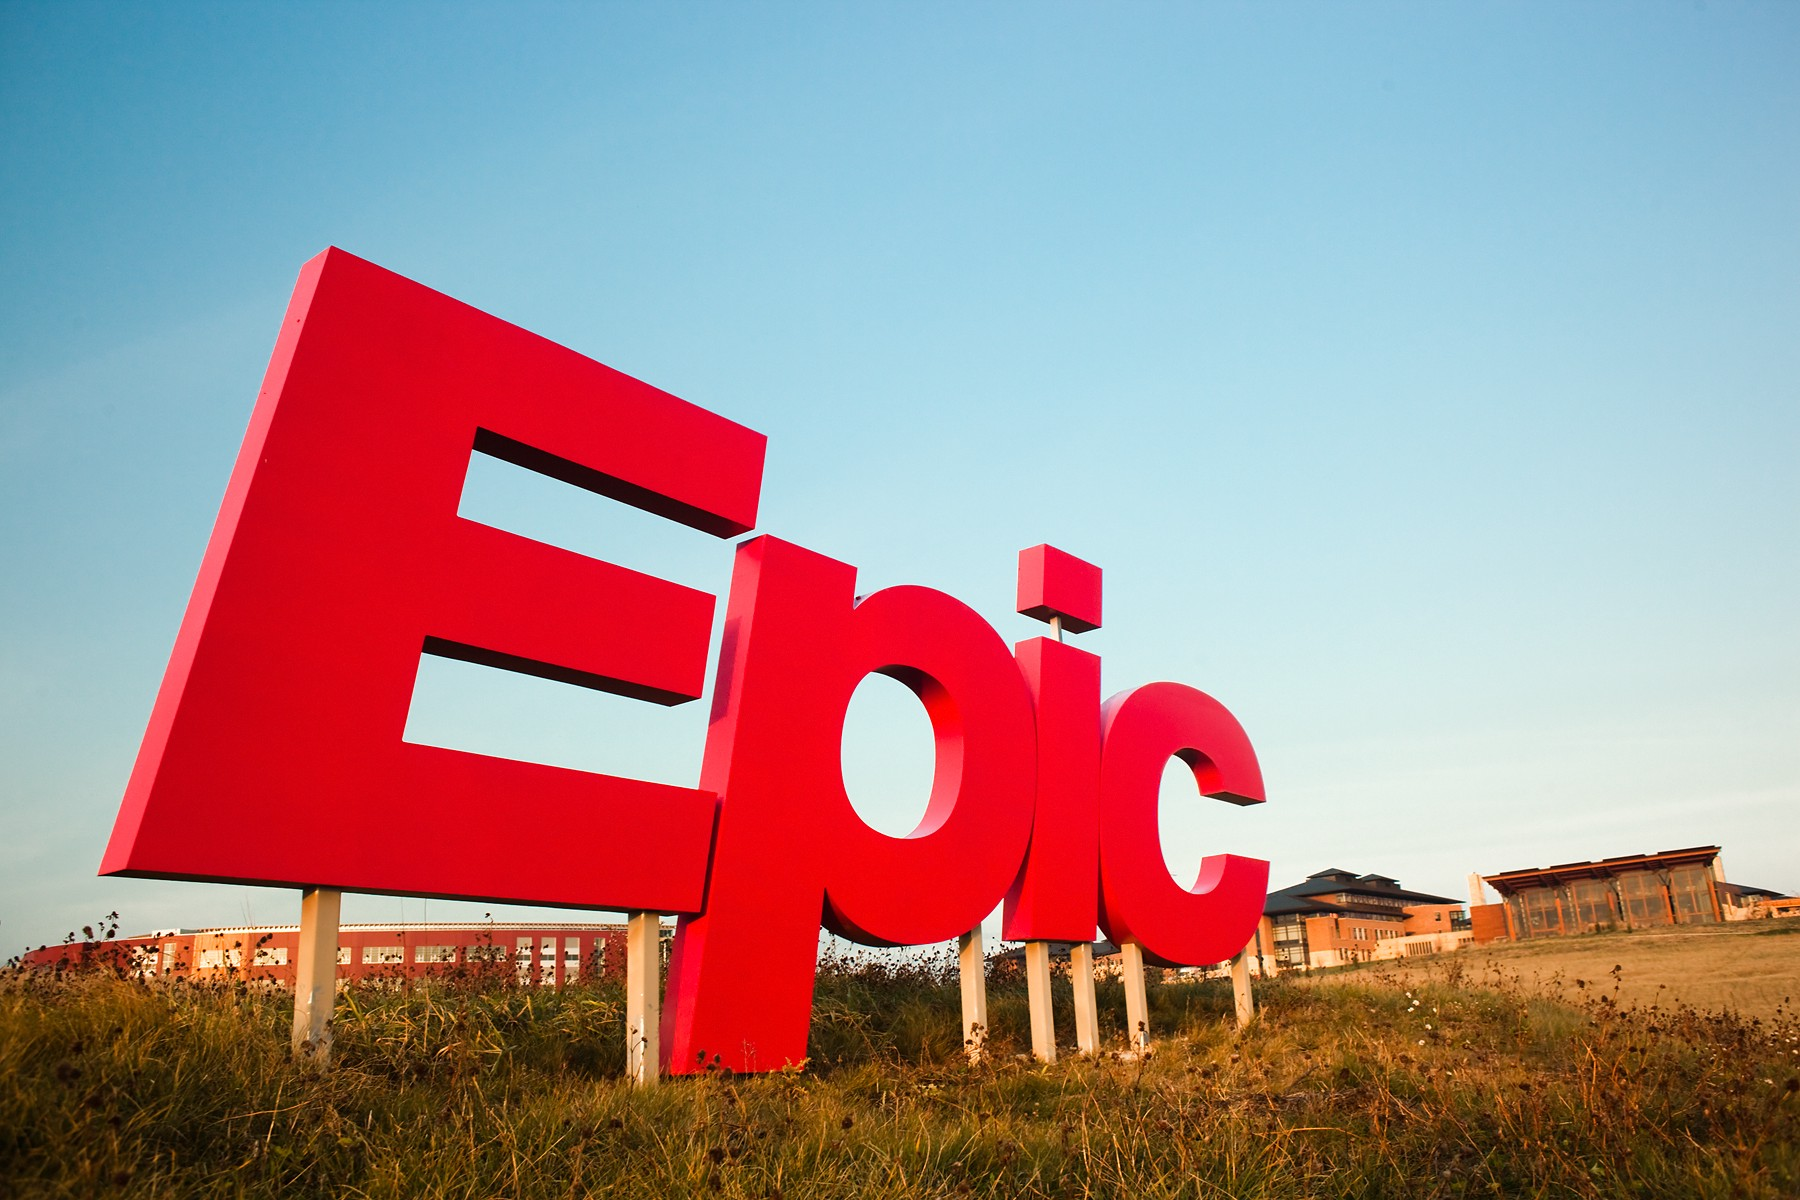 Epic Systems is the startup Dragon that eats Unicorns for breakfast